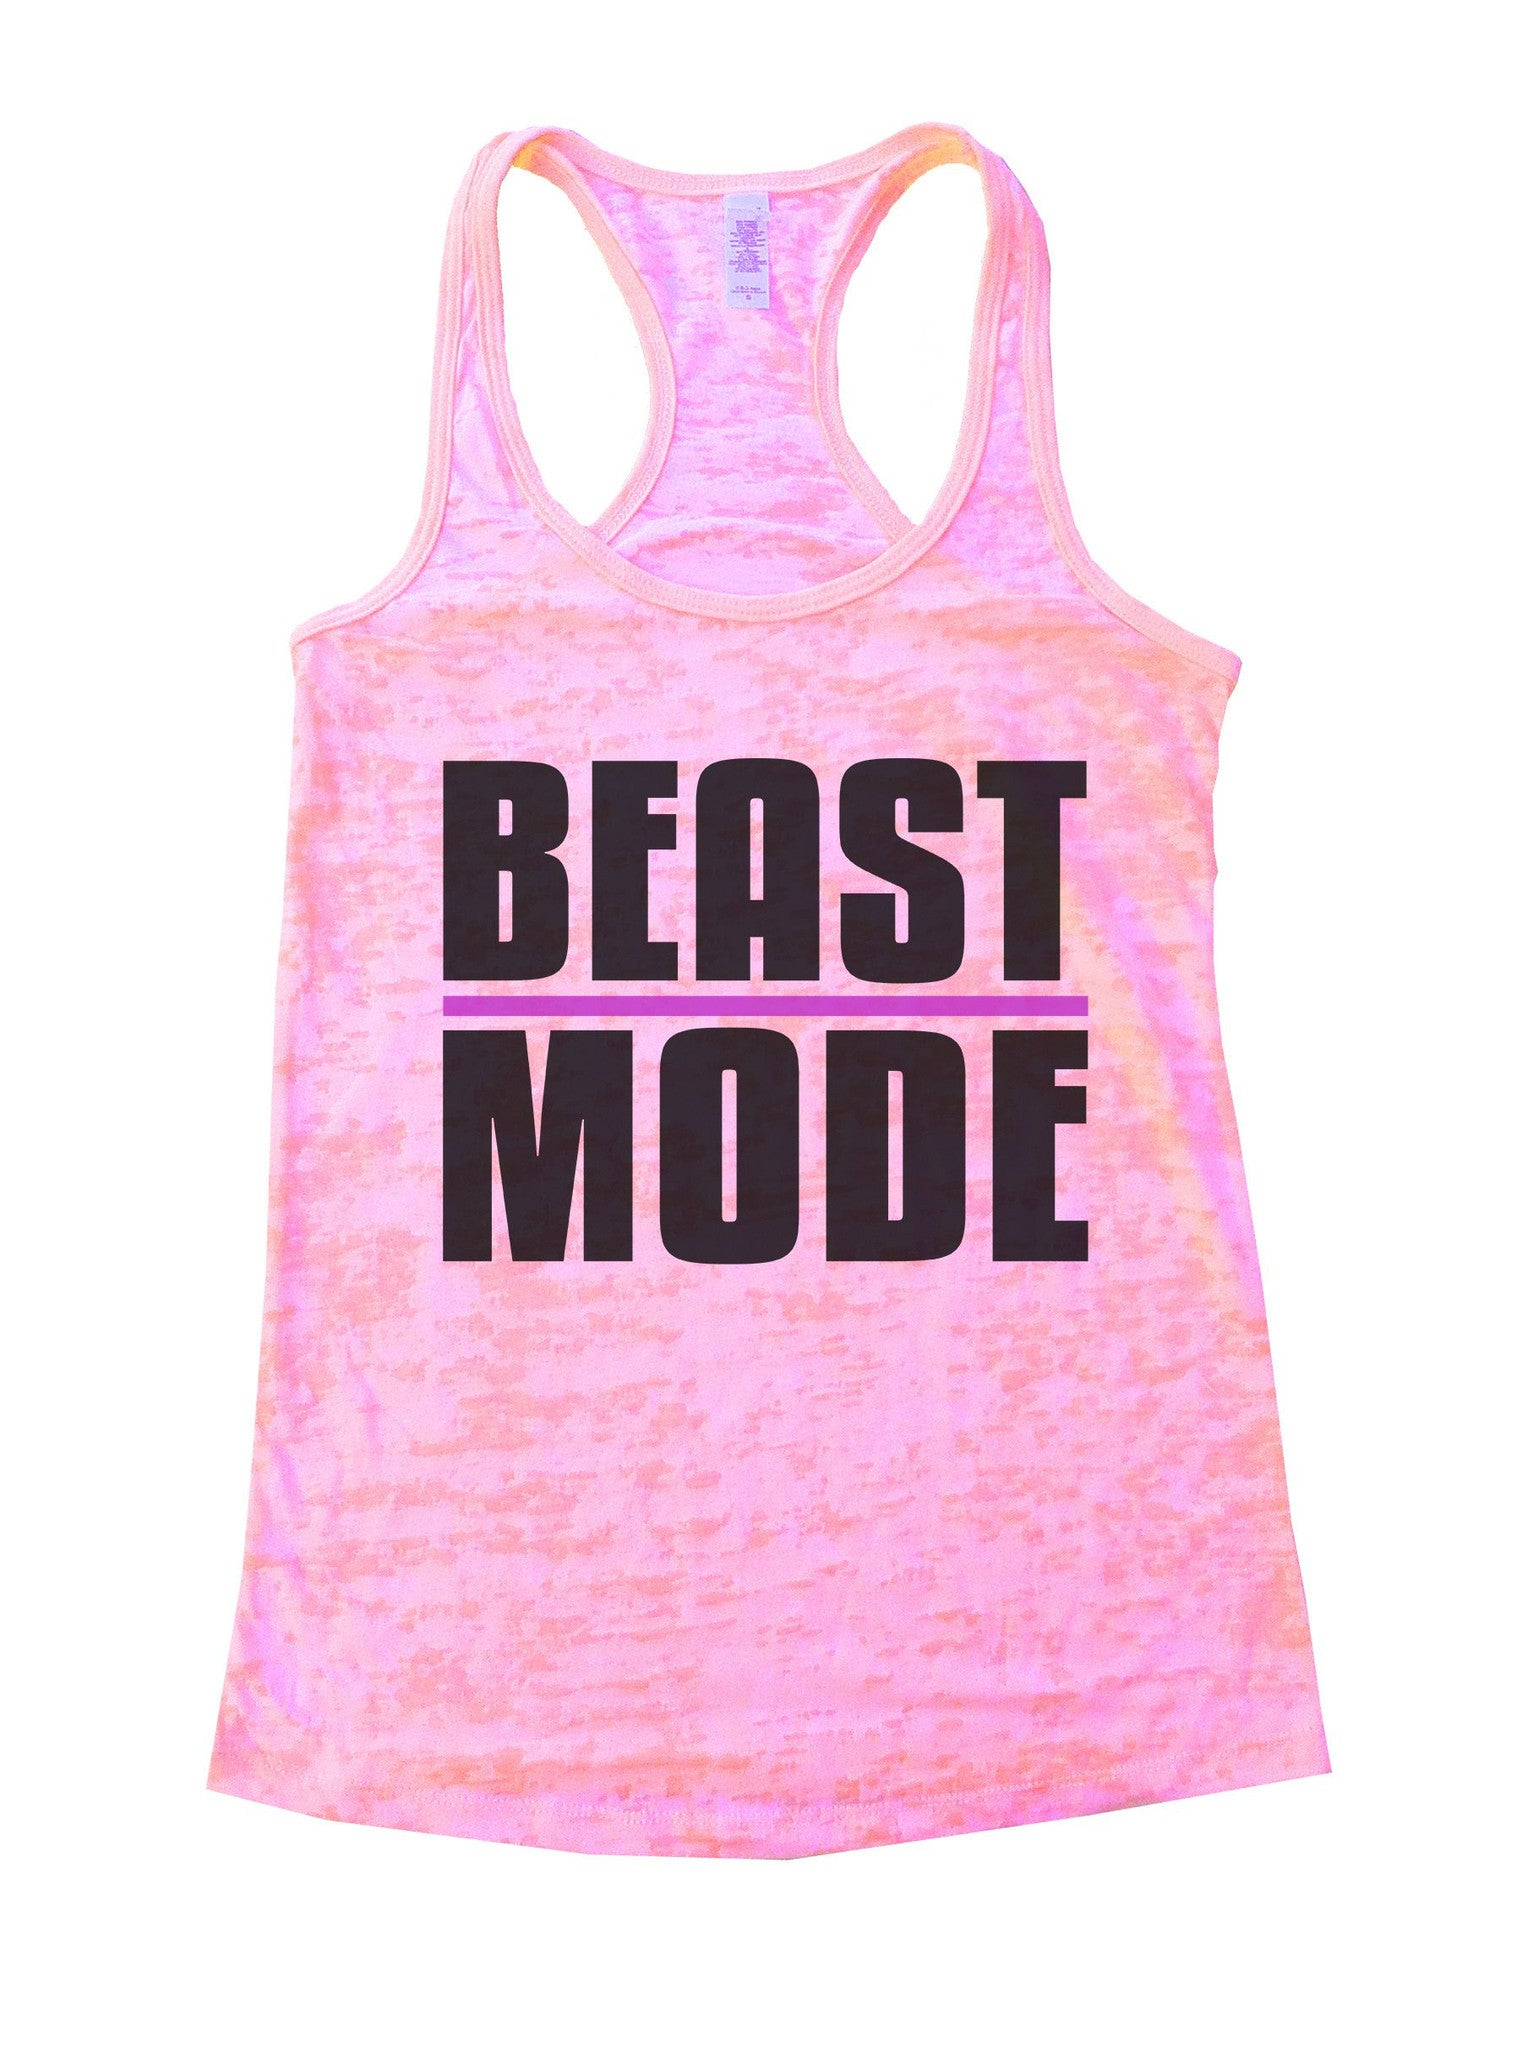 Beast Mode Burnout Tank Top By BurnoutTankTops.com - 1107 - Funny Shirts Tank Tops Burnouts and Triblends  - 3